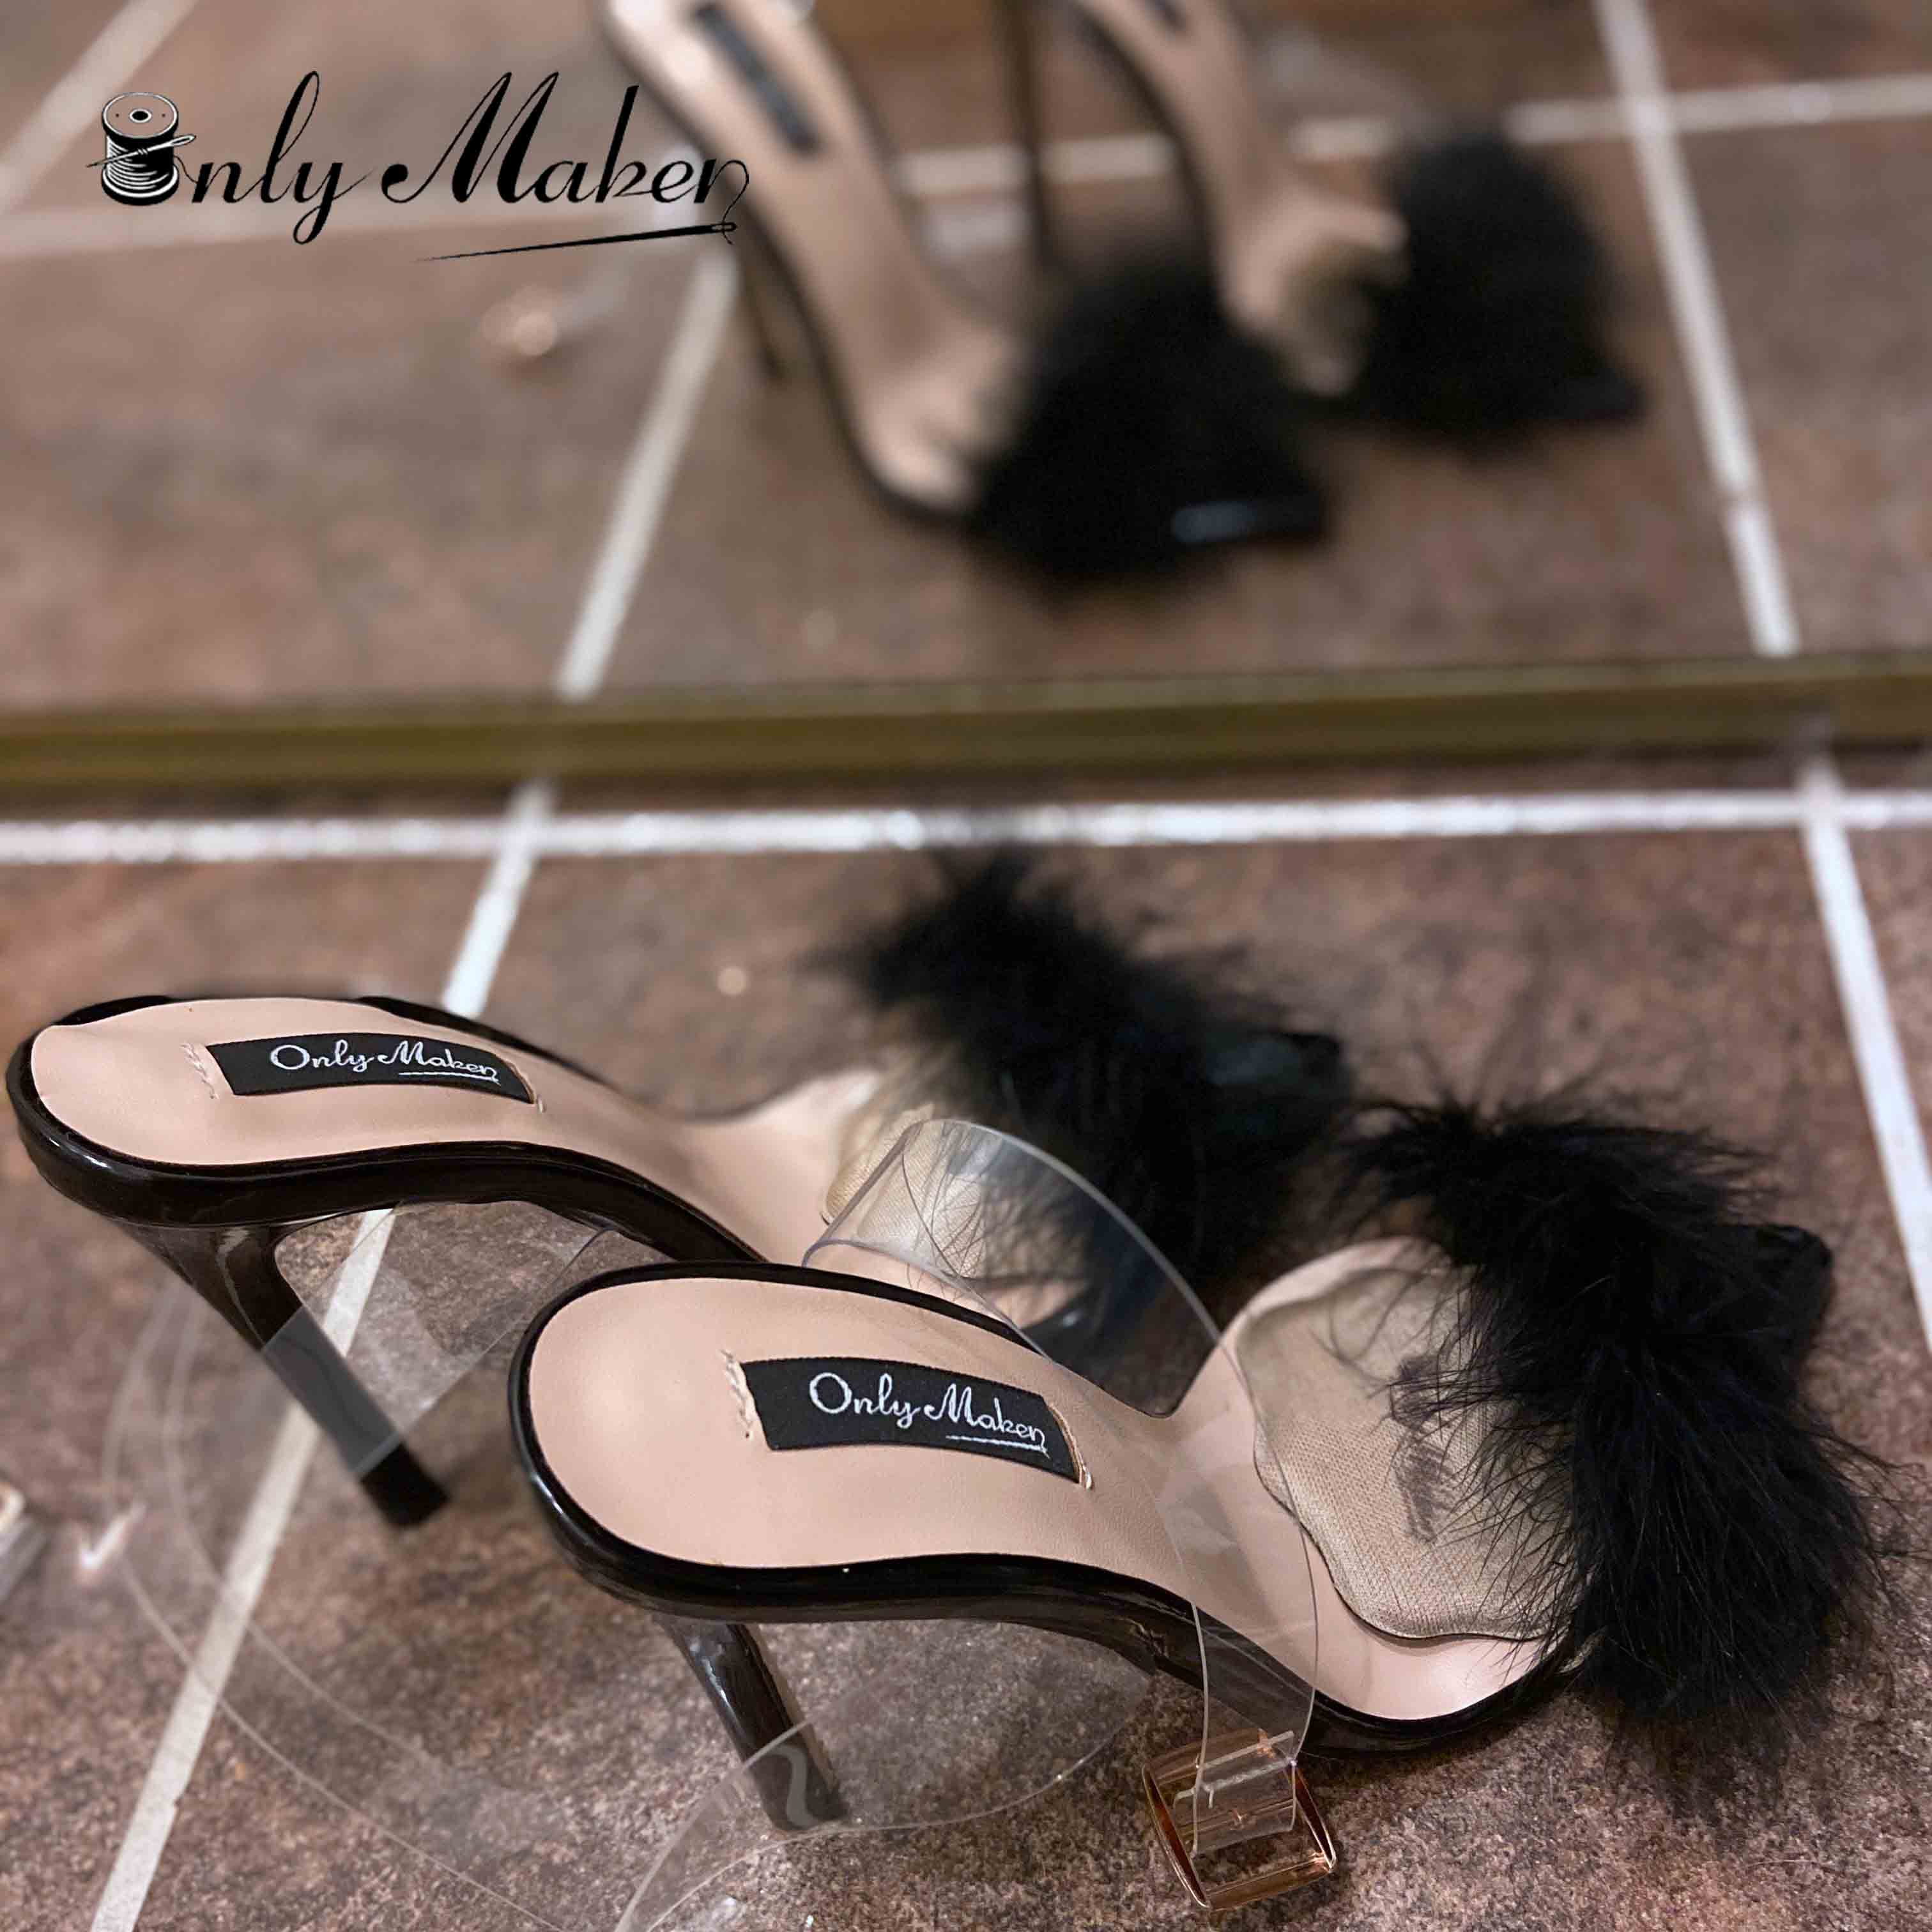 onlymaker Women/'s Slingback Pumps Pointed Toe Ankle Strap Animal Print High Heel